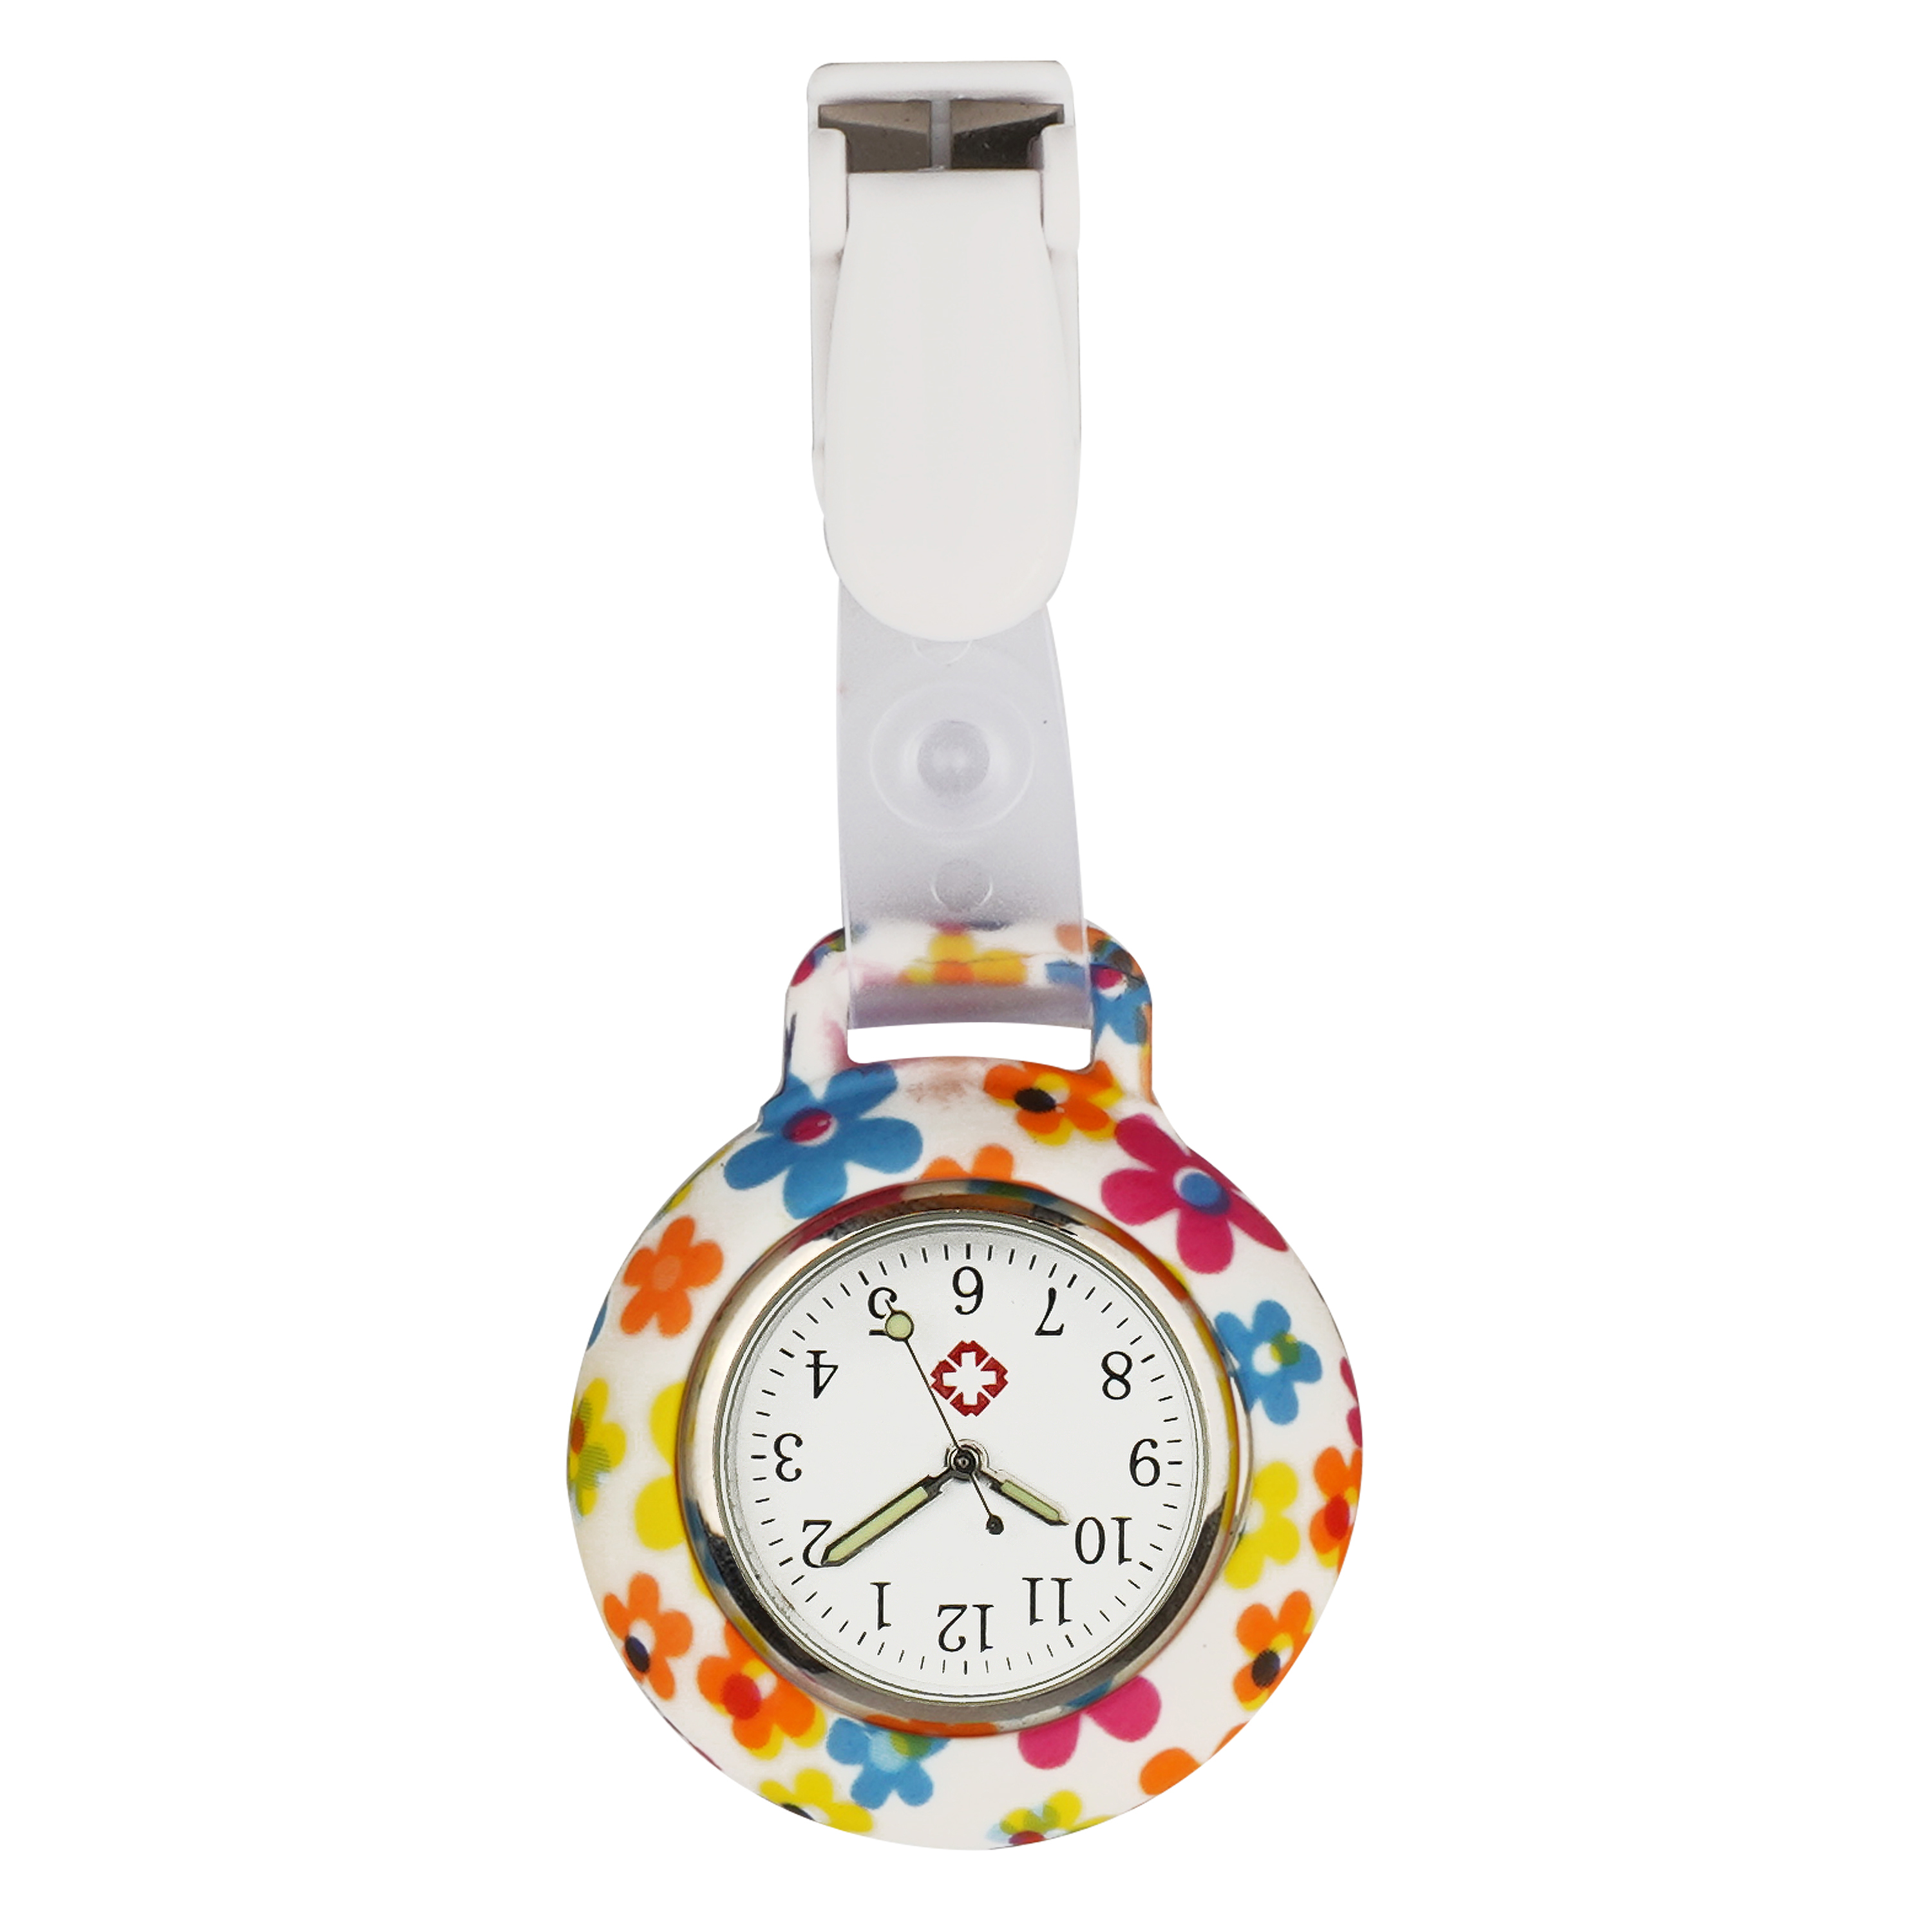 New Silicone Nurse Watches clip pattern full printing designs